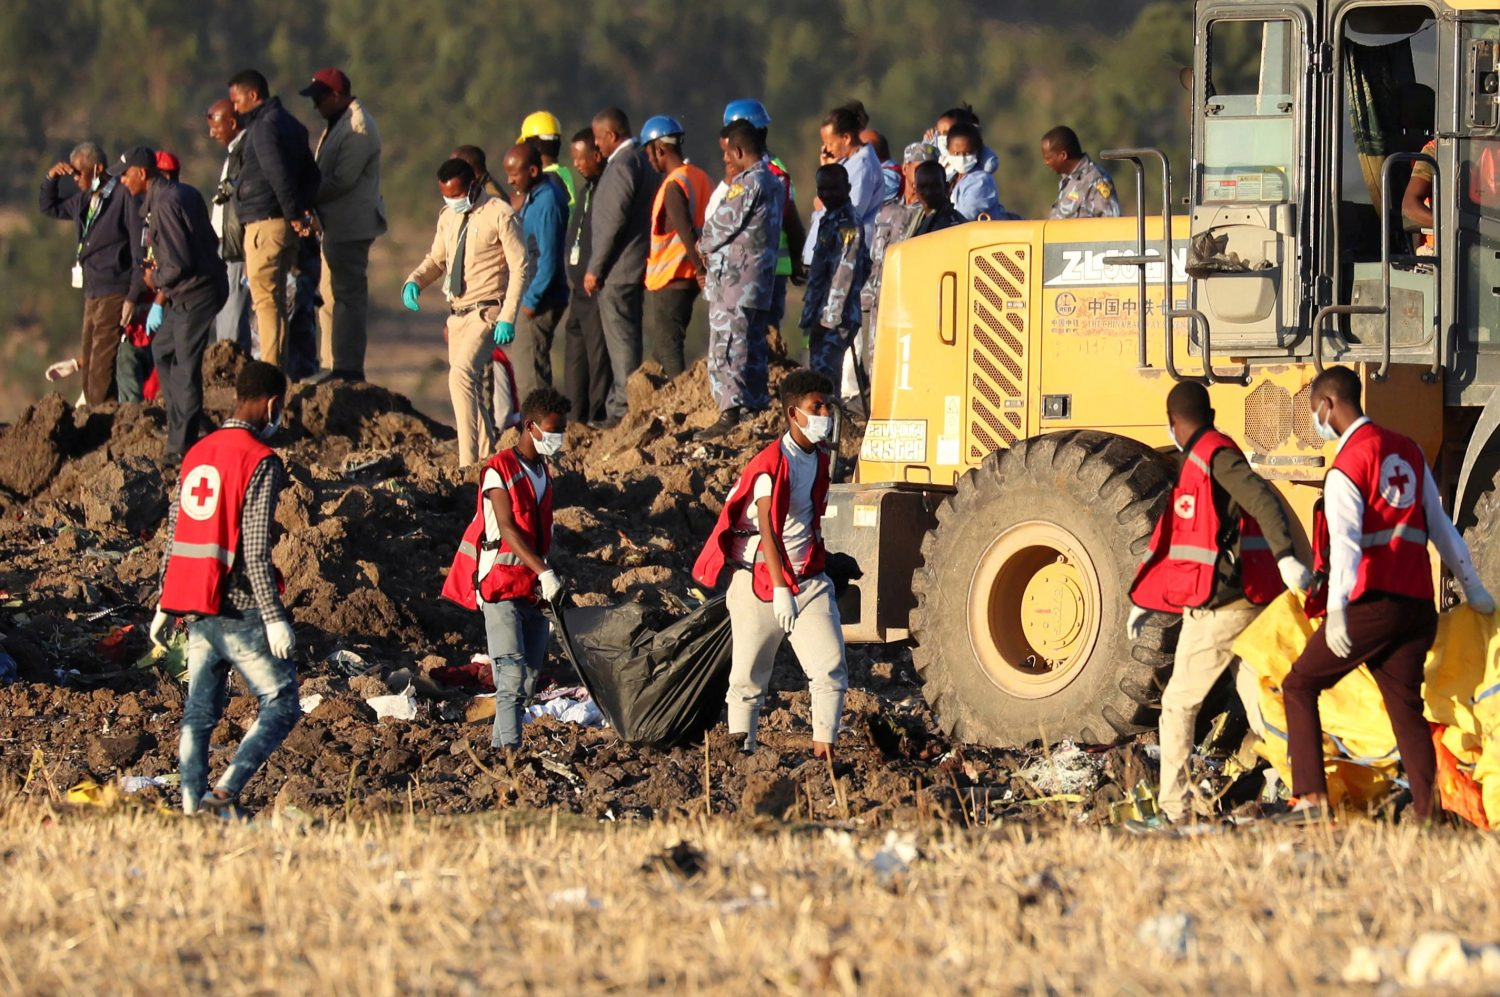 Members of the search and rescue mission carry dead bodies at the scene of the Ethiopian Airlines Flight ET 302 plane crash, near the town of Bishoftu, southeast of Addis Ababa, Ethiopia March 10, 2019. REUTERS/Tiksa Negeri